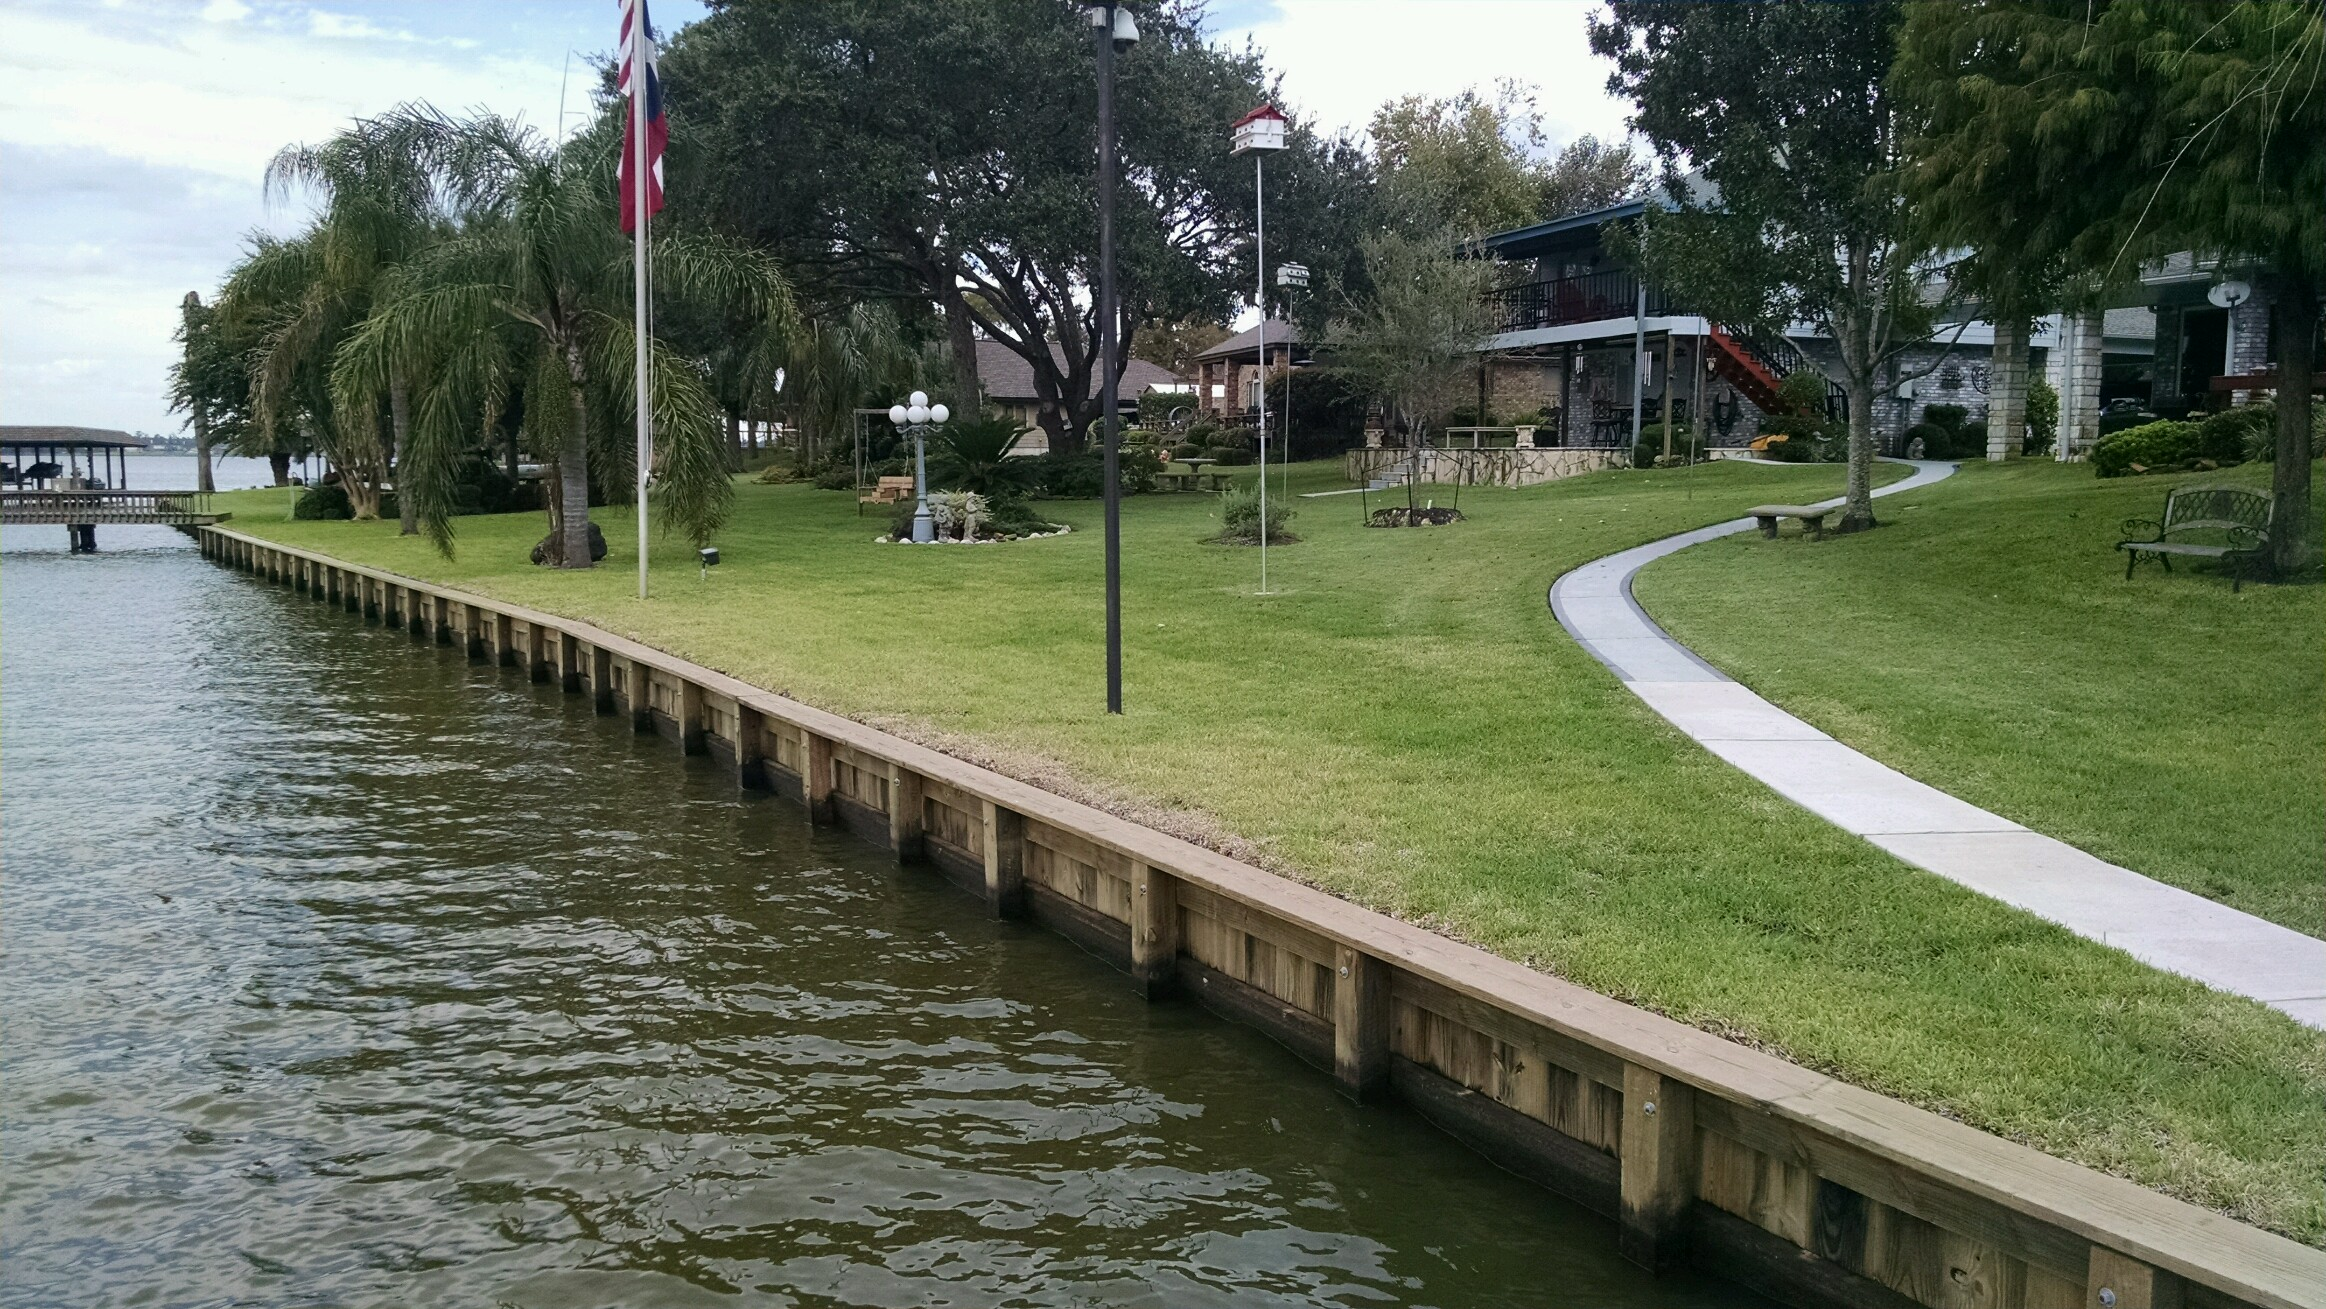 After sod and bulkhead construction on lake houston